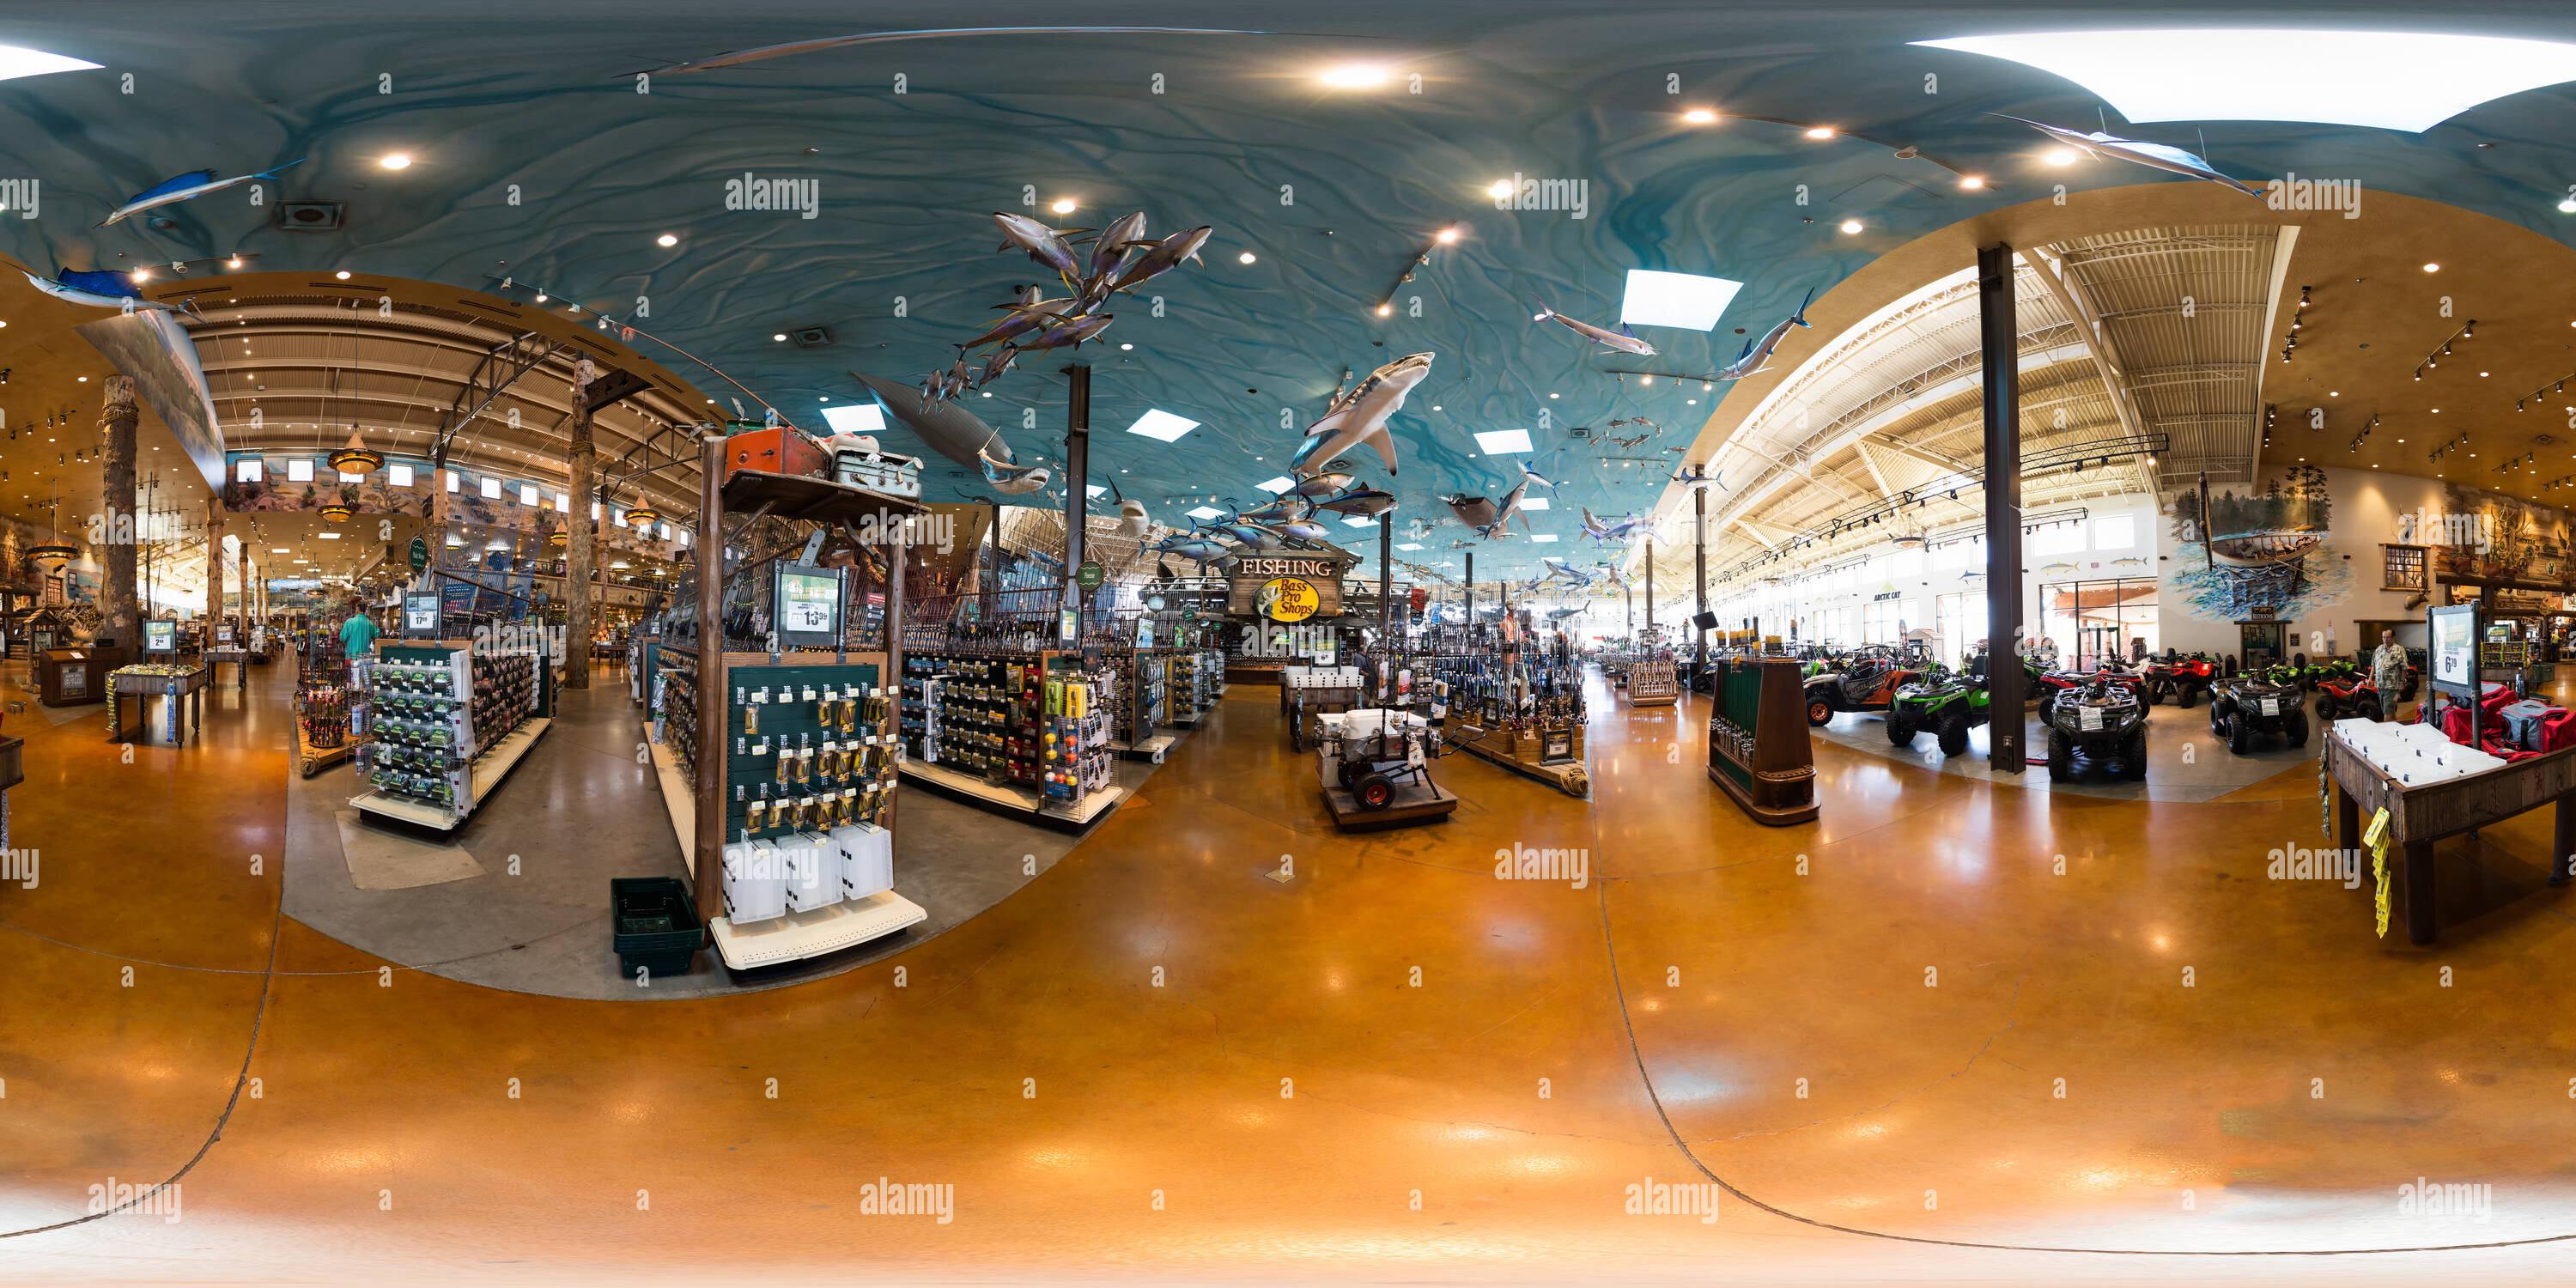 bd34ab3909 360 View of Bass Pro Shops 230347245 - Alamy